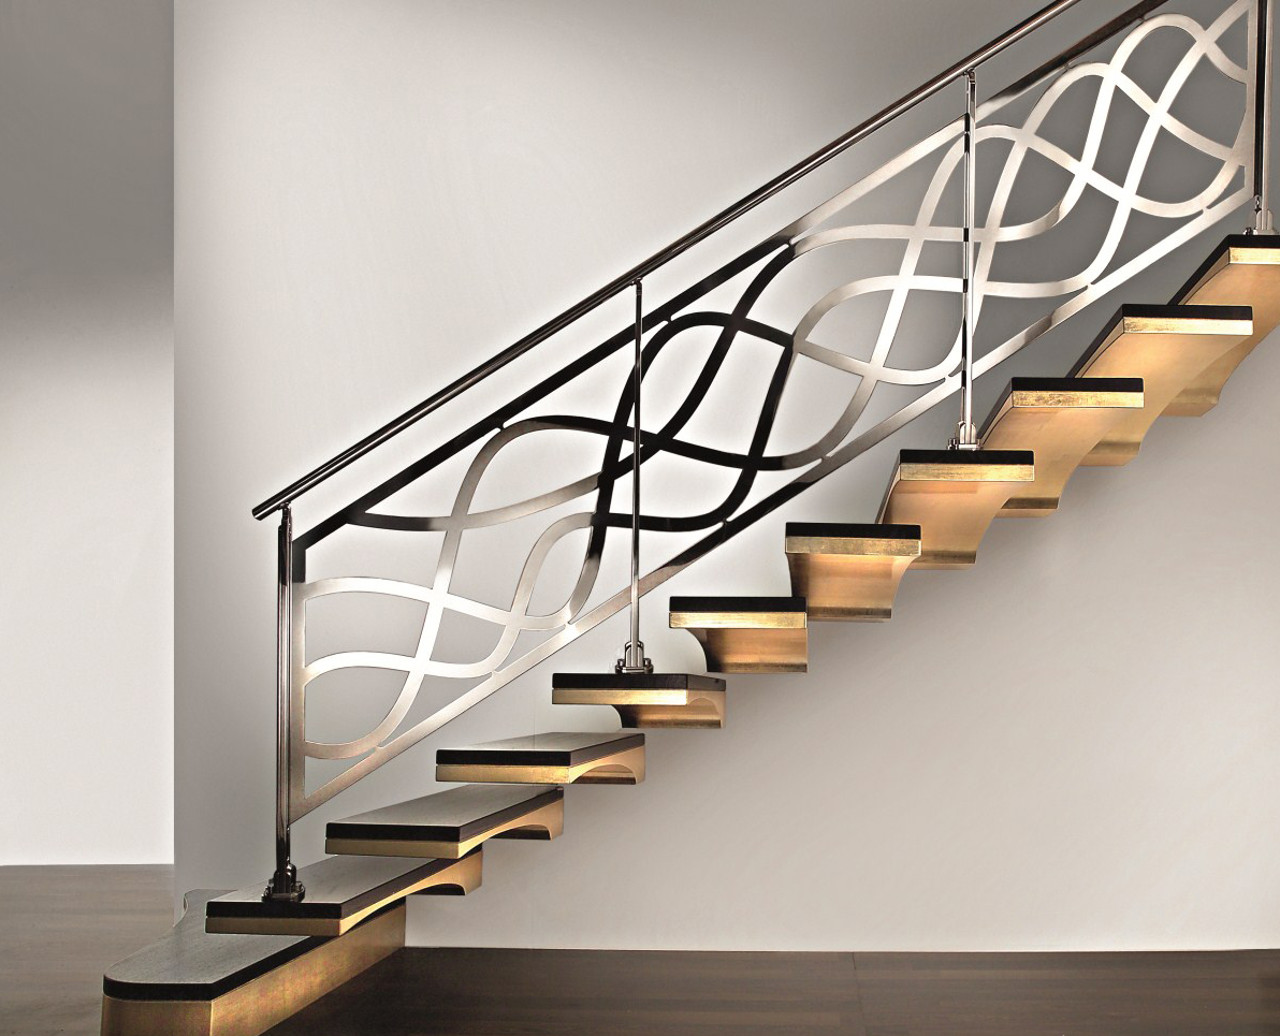 Stainless Steel Railing Is The Best Choice